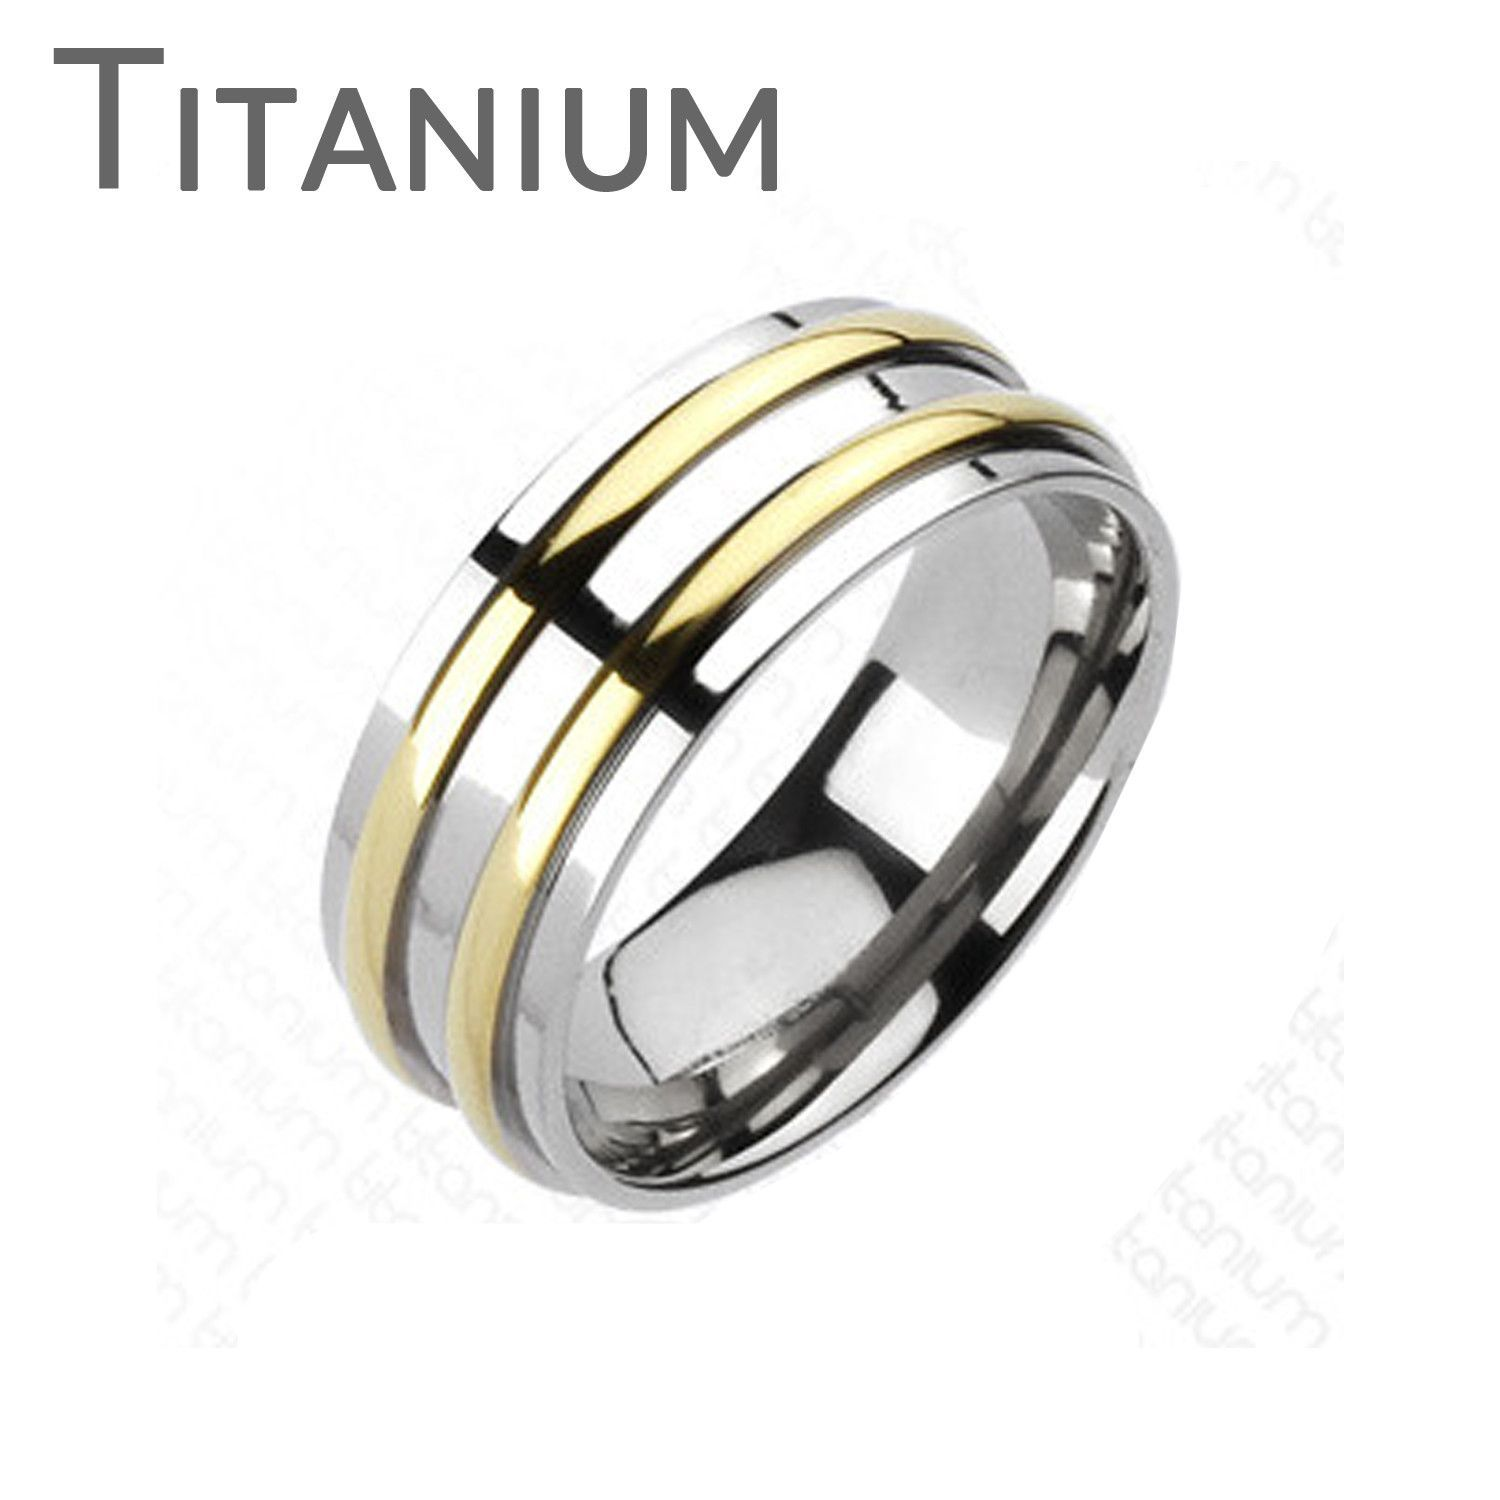 Othello  Two Golden Bands Solid Titanium Traditional Wedding Band